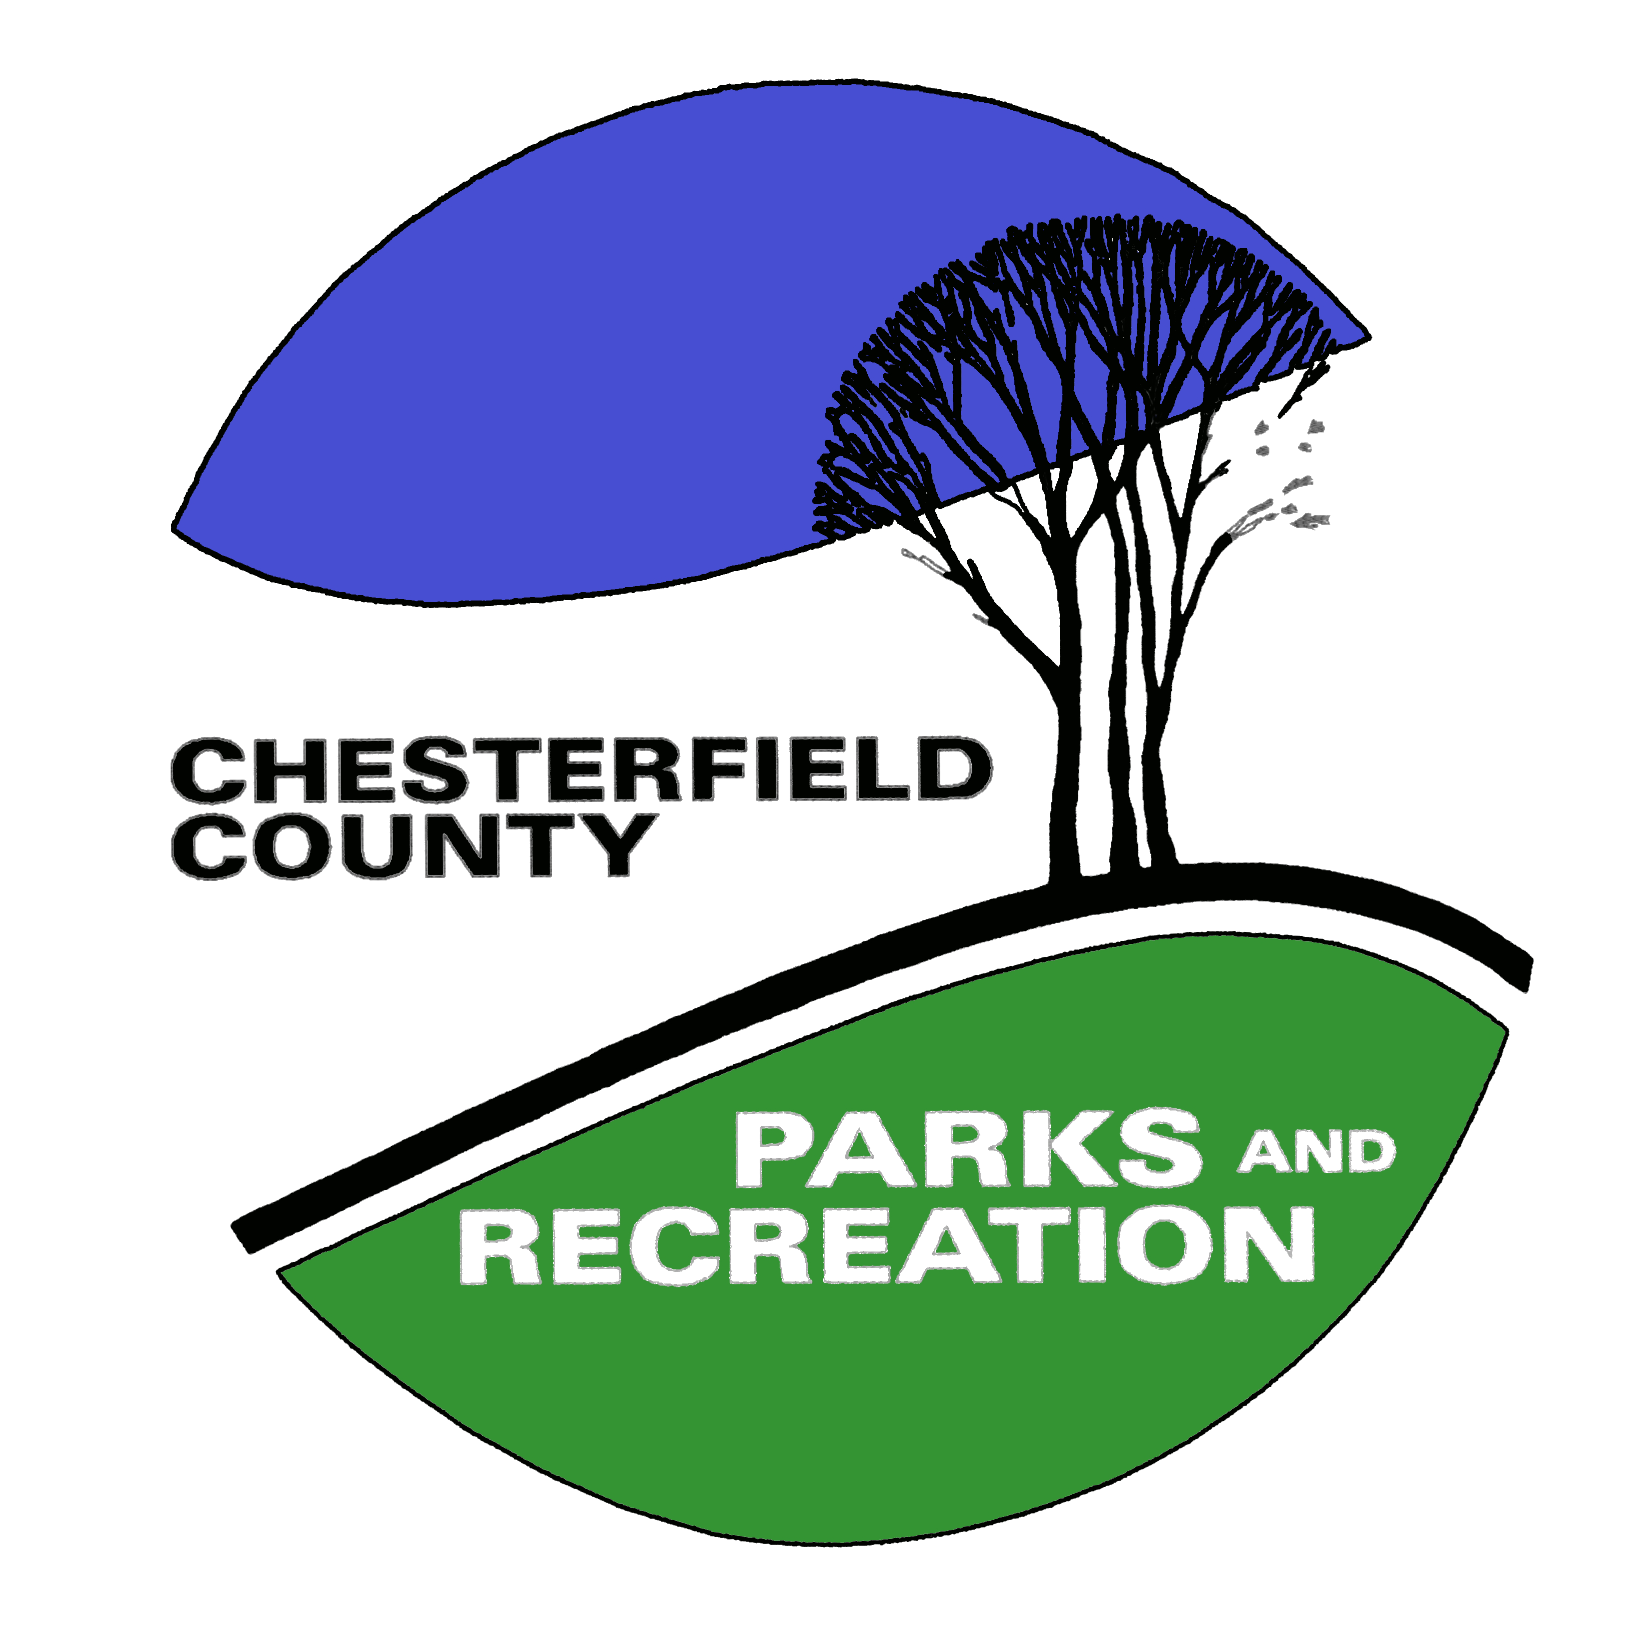 Chesterfield County Parks and Rec